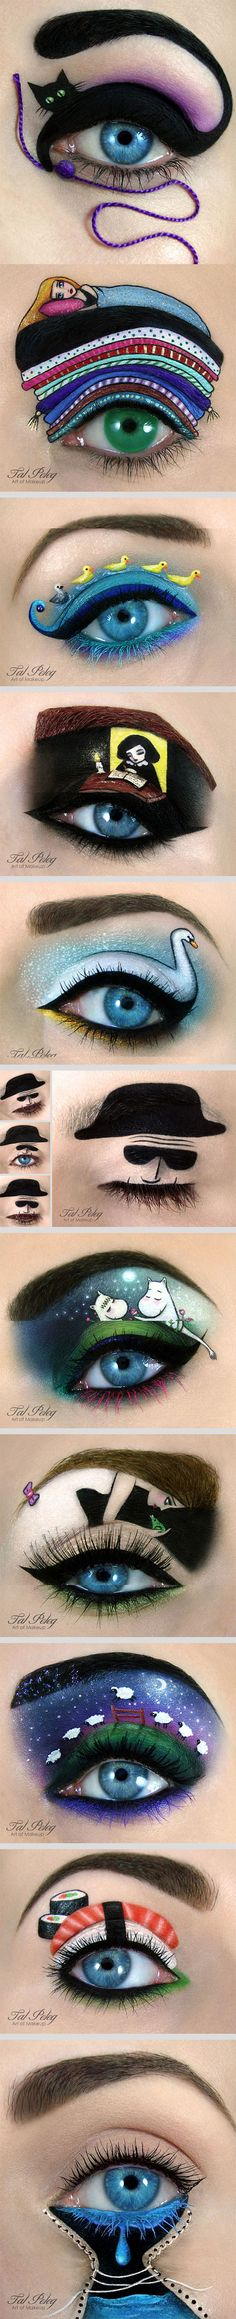 I would never do my makeup like this, but they look really cool and it's a piece of artwork.